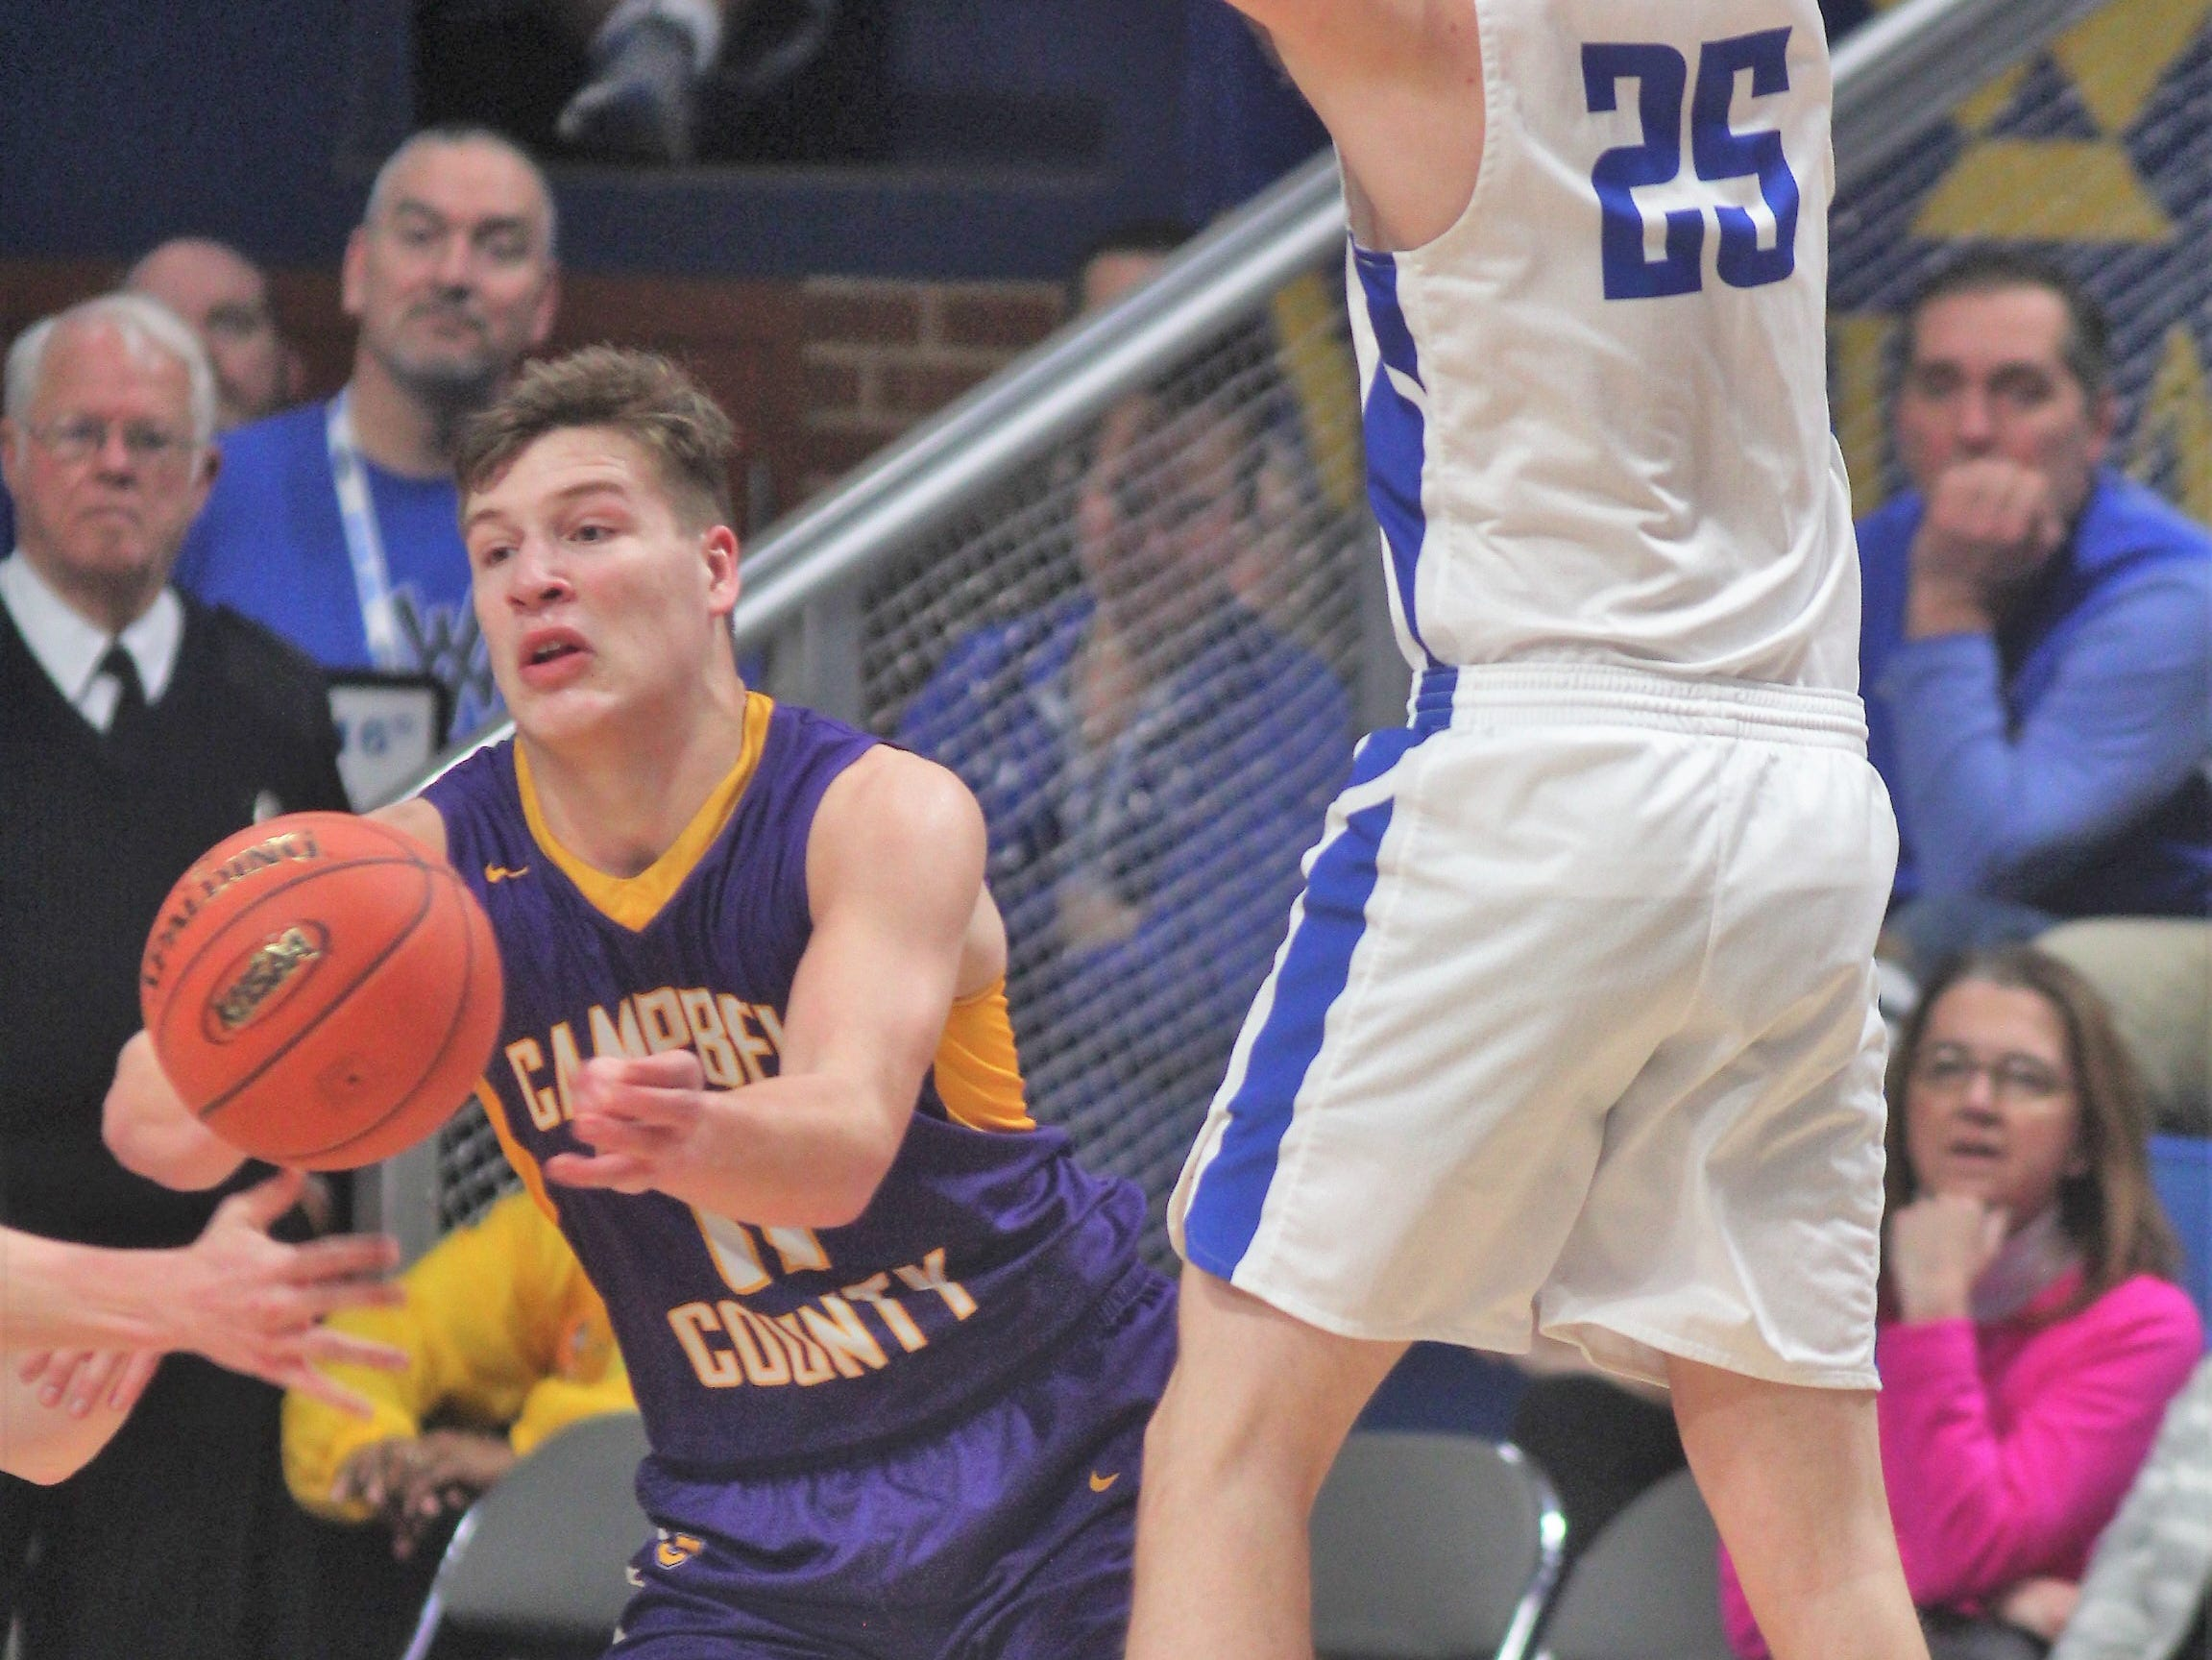 Campbell County senior Reid Jolly gets the ball as Walton-Verona senior Kameron Pardee tries to distract him as Campbell County defeated Walton-Verona 49-42 in the state quarterfinals of the Whitaker Bank/KHSAA Boys Basketball Sweet 16 March 8, 2019, at Rupp Arena.